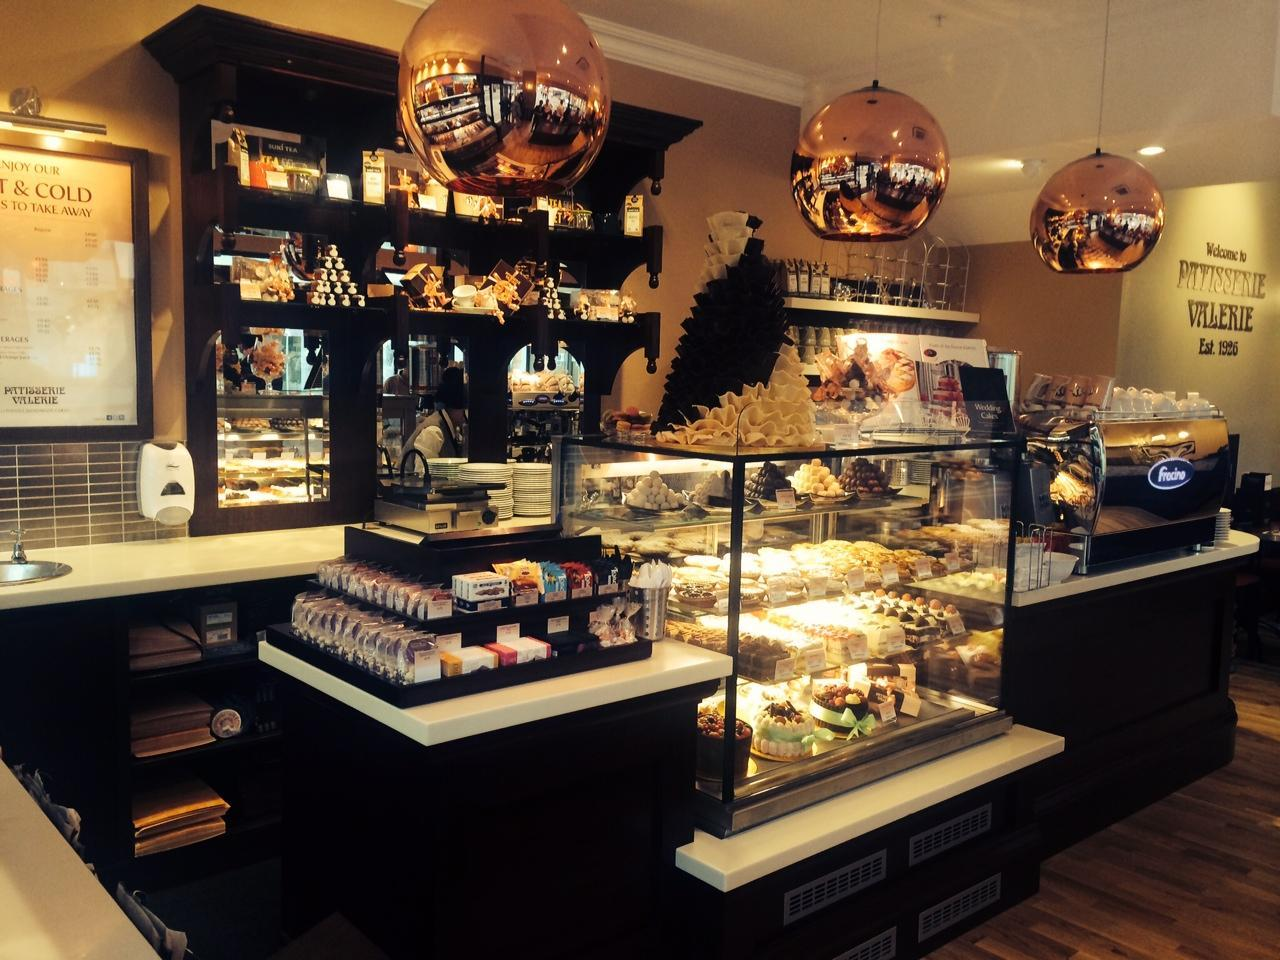 Patisserie Valerie - Cambridge - Cambridge